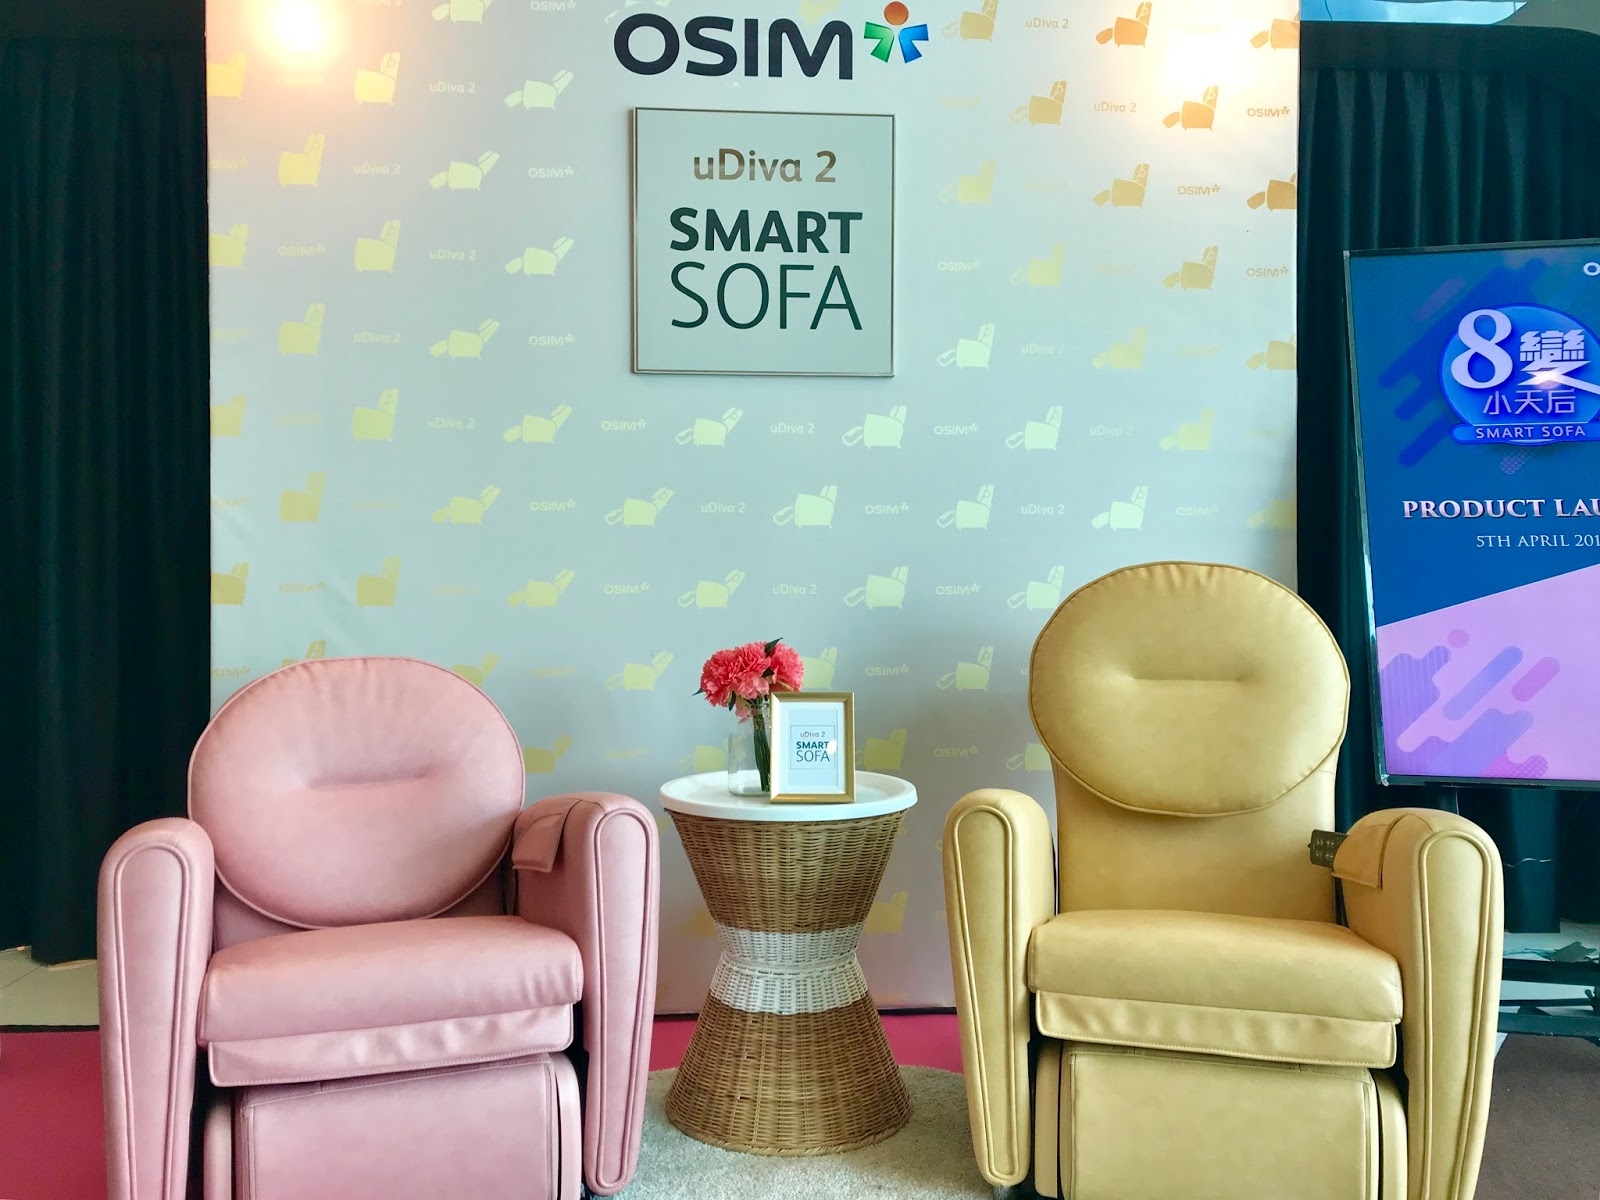 [Review] The New Revolution Smart Sofa by OSIM uDiva 2 @ OSIM Malaysia